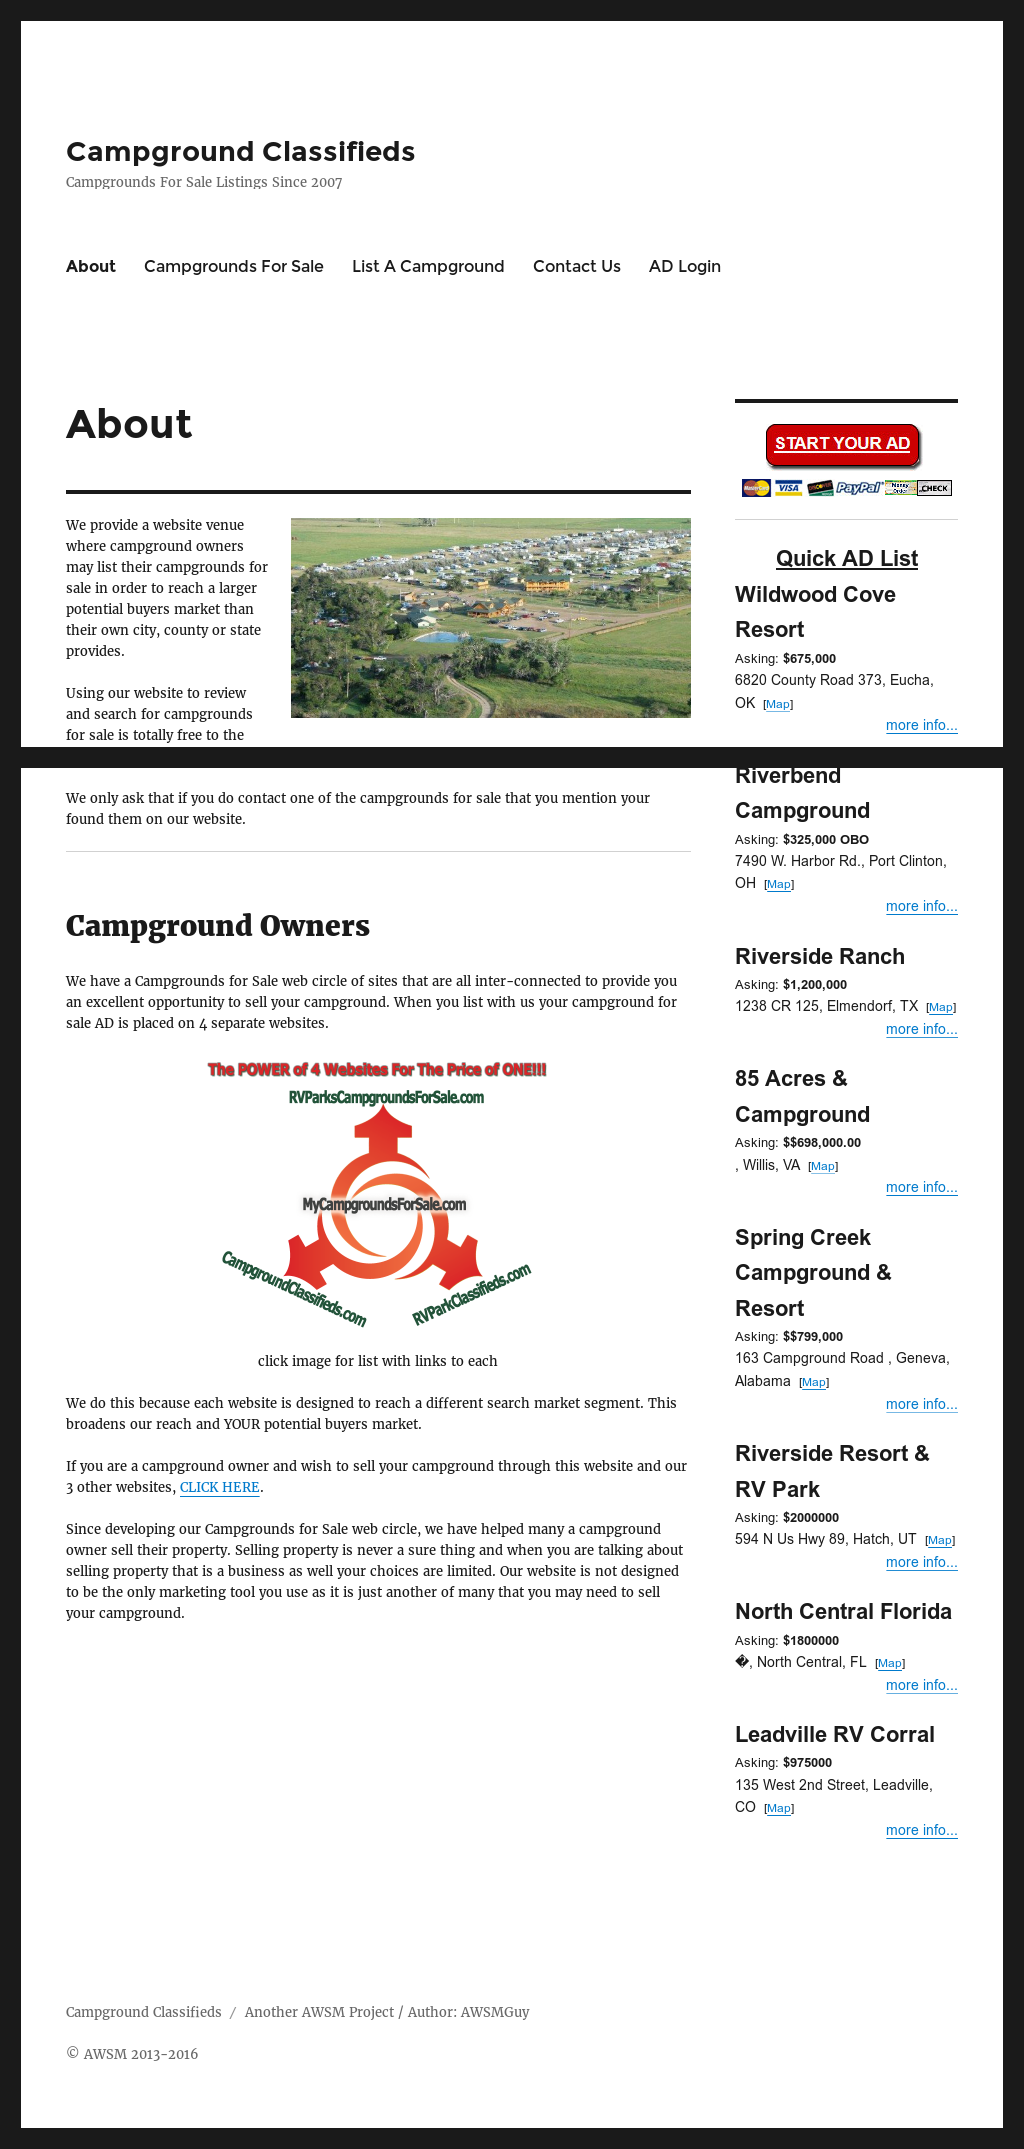 Campgrounds For Sale Ad Network & Awsm Competitors, Revenue and